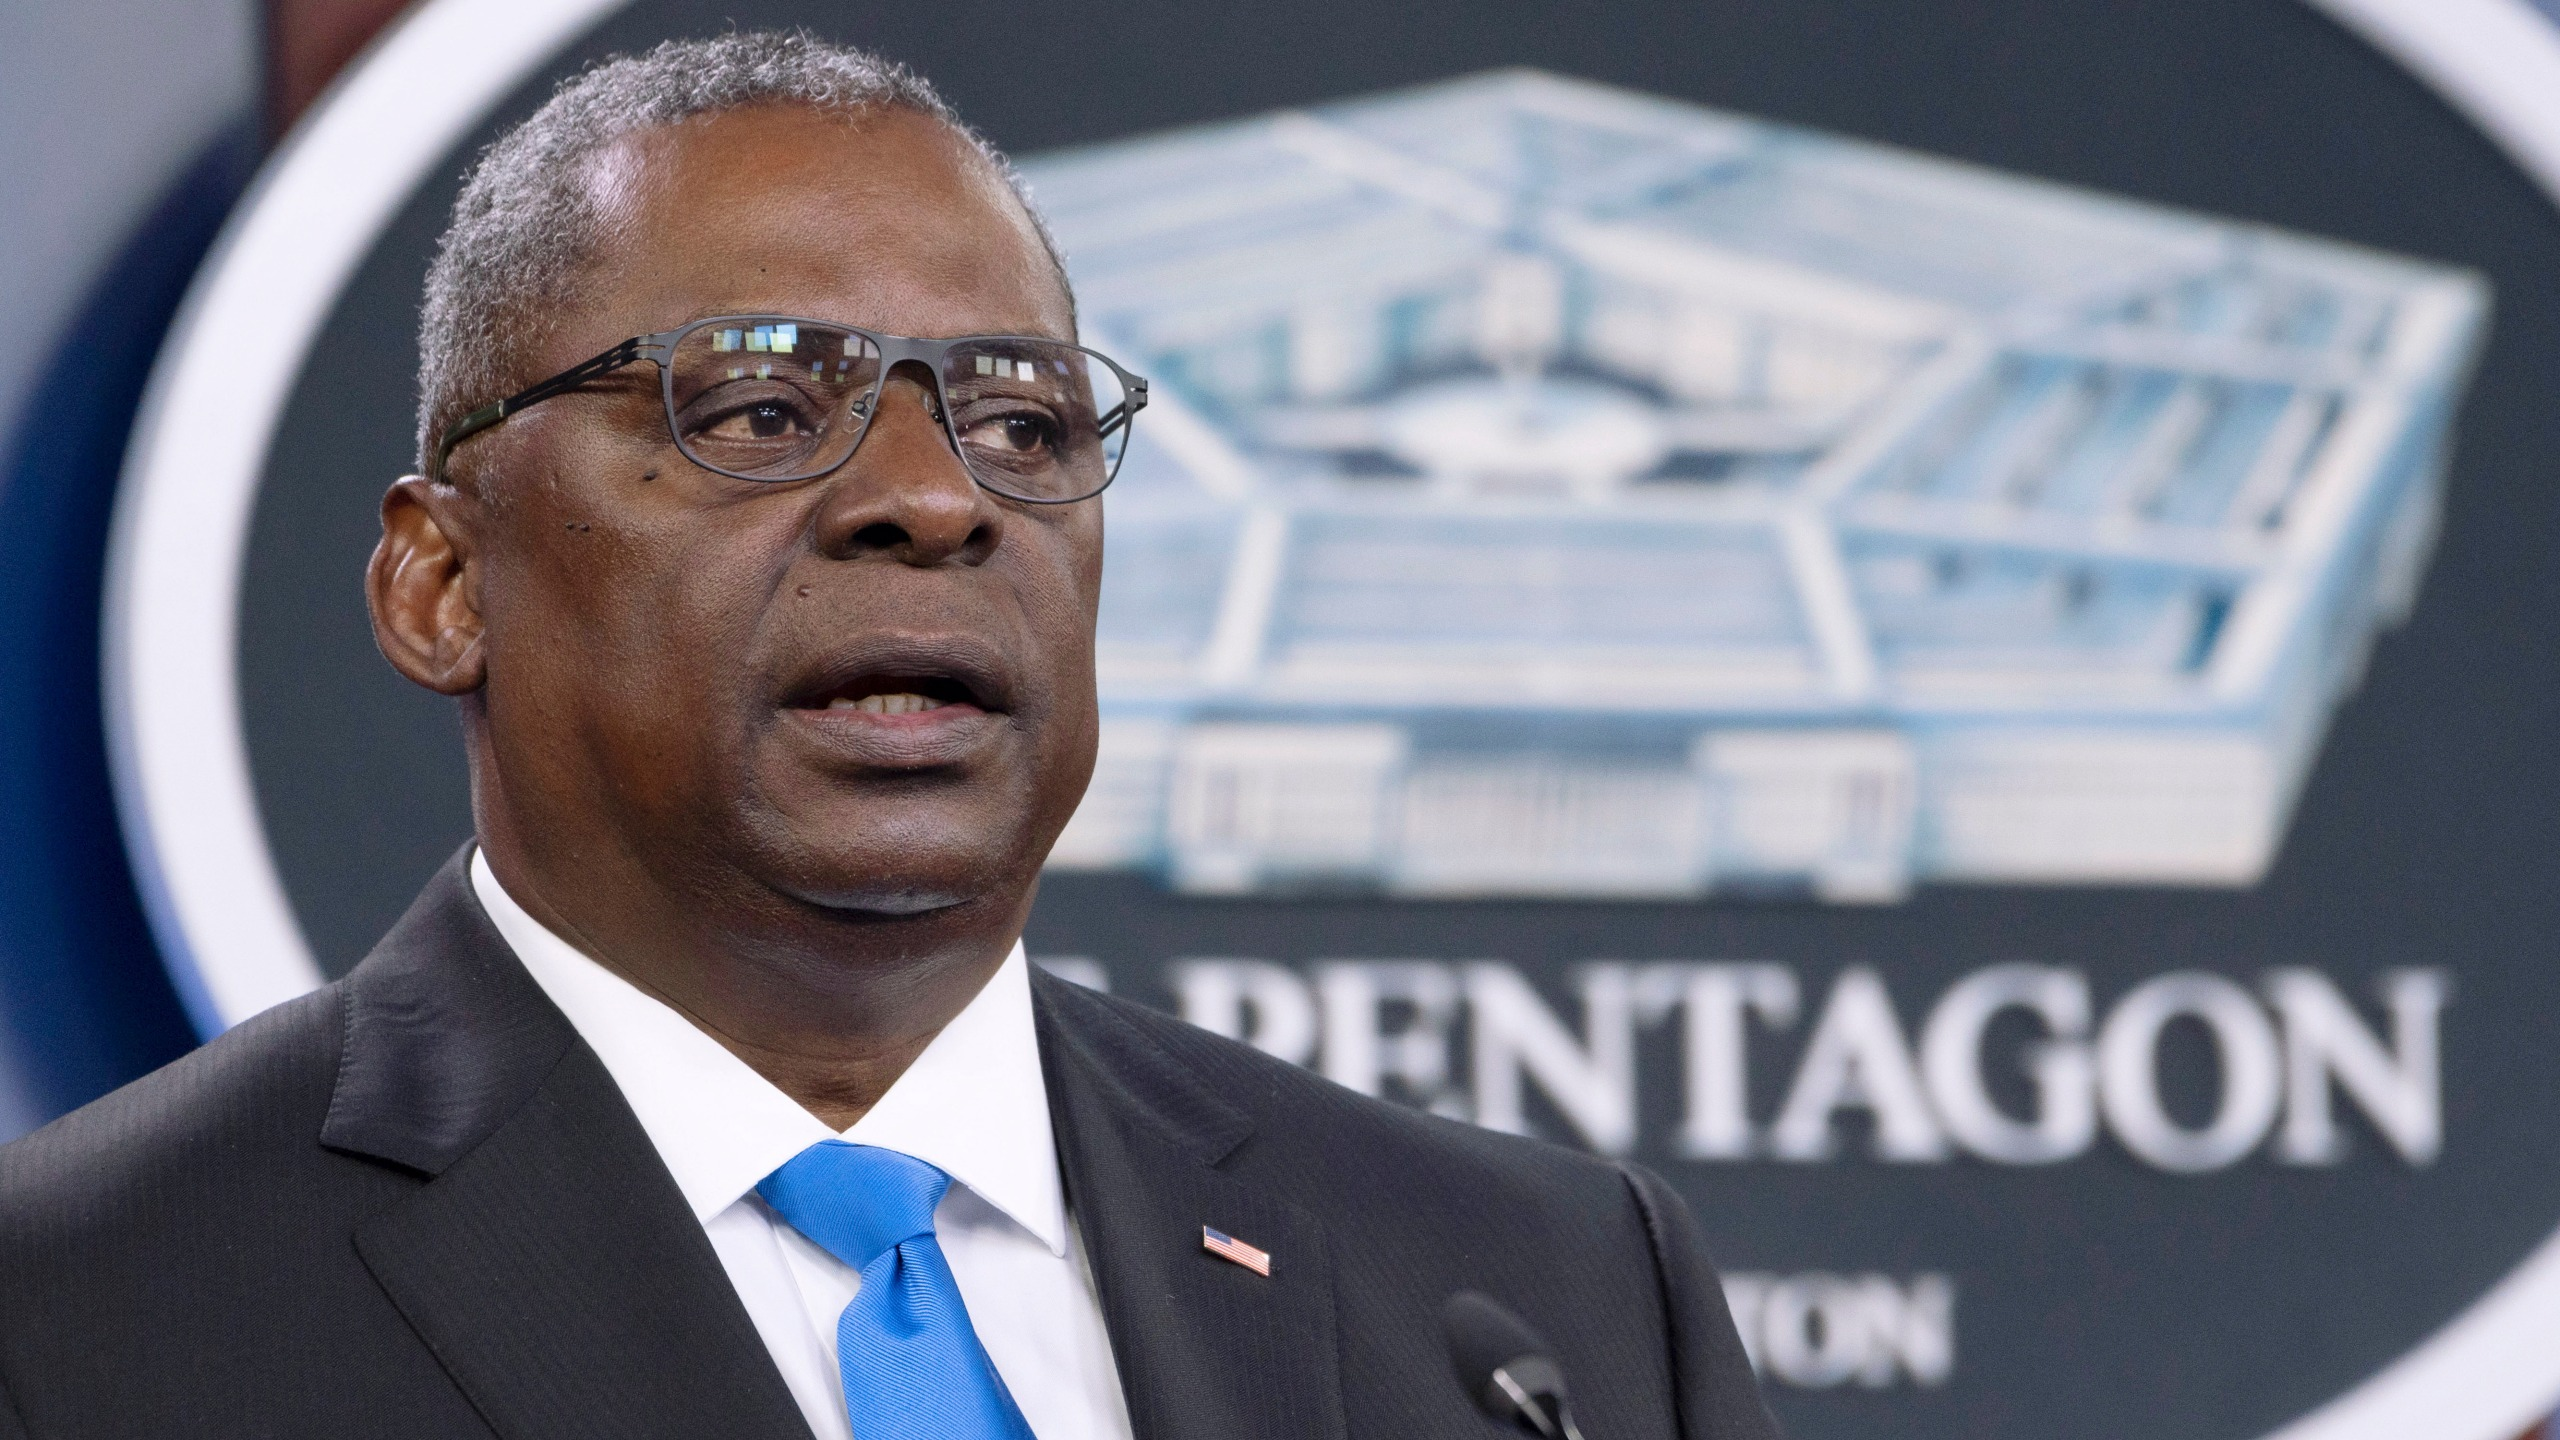 In this July 21, 2021 file photo, Defense Secretary Lloyd Austin speaks at a press briefing at the Pentagon in Washington. Austin has said he is working expeditiously to make the COVID-19 vaccine mandatory for military personnel and is expected to ask Biden to waive a federal law that requires individuals be given a choice if the vaccine is not fully licensed. (AP Photo/Kevin Wolf, File)